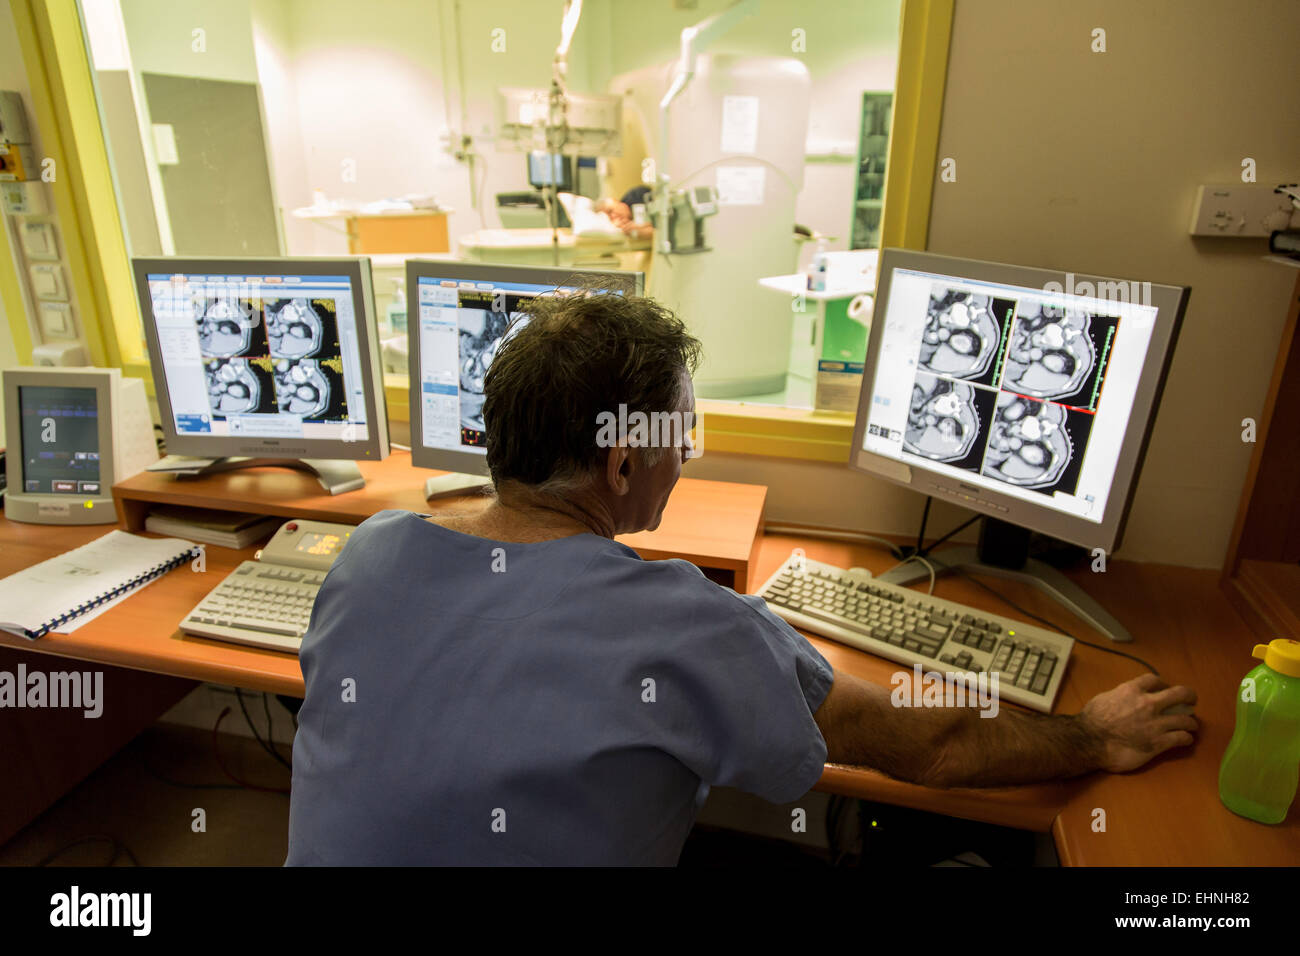 CT scan-assisted cryotherapy to destroy a kidney tumor, Saint-Louis hospital, Paris, France. - Stock Image